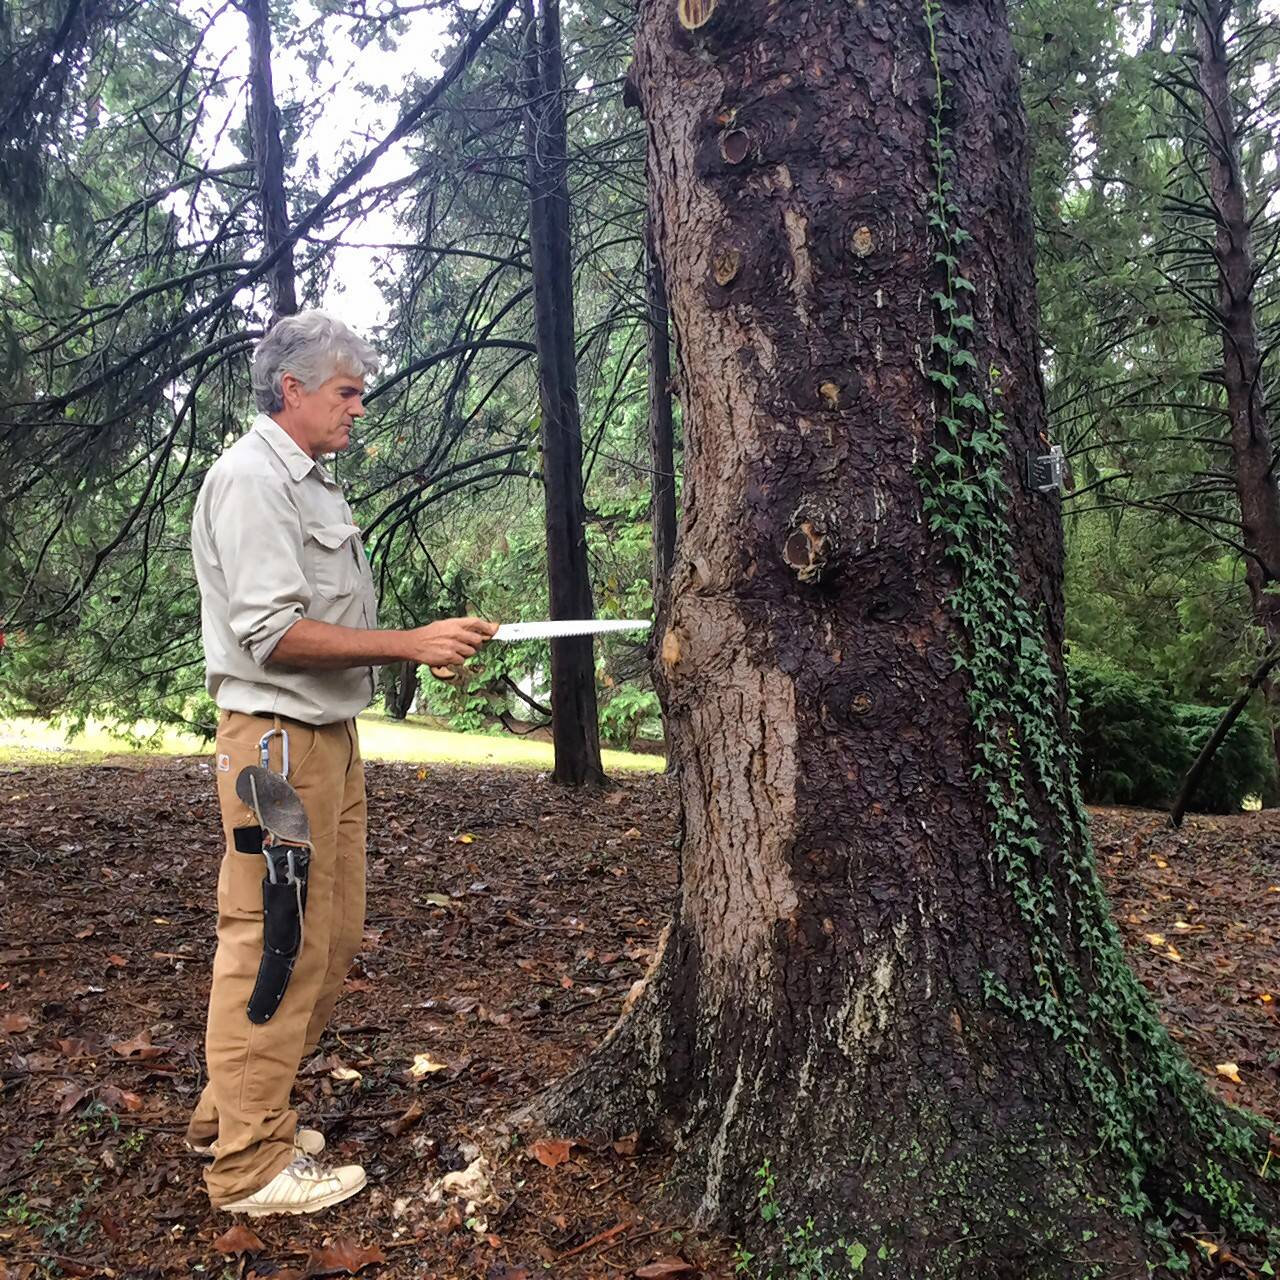 Scott Johnston checks out a mature Norway spruce at the State Arboretum of Virginia.